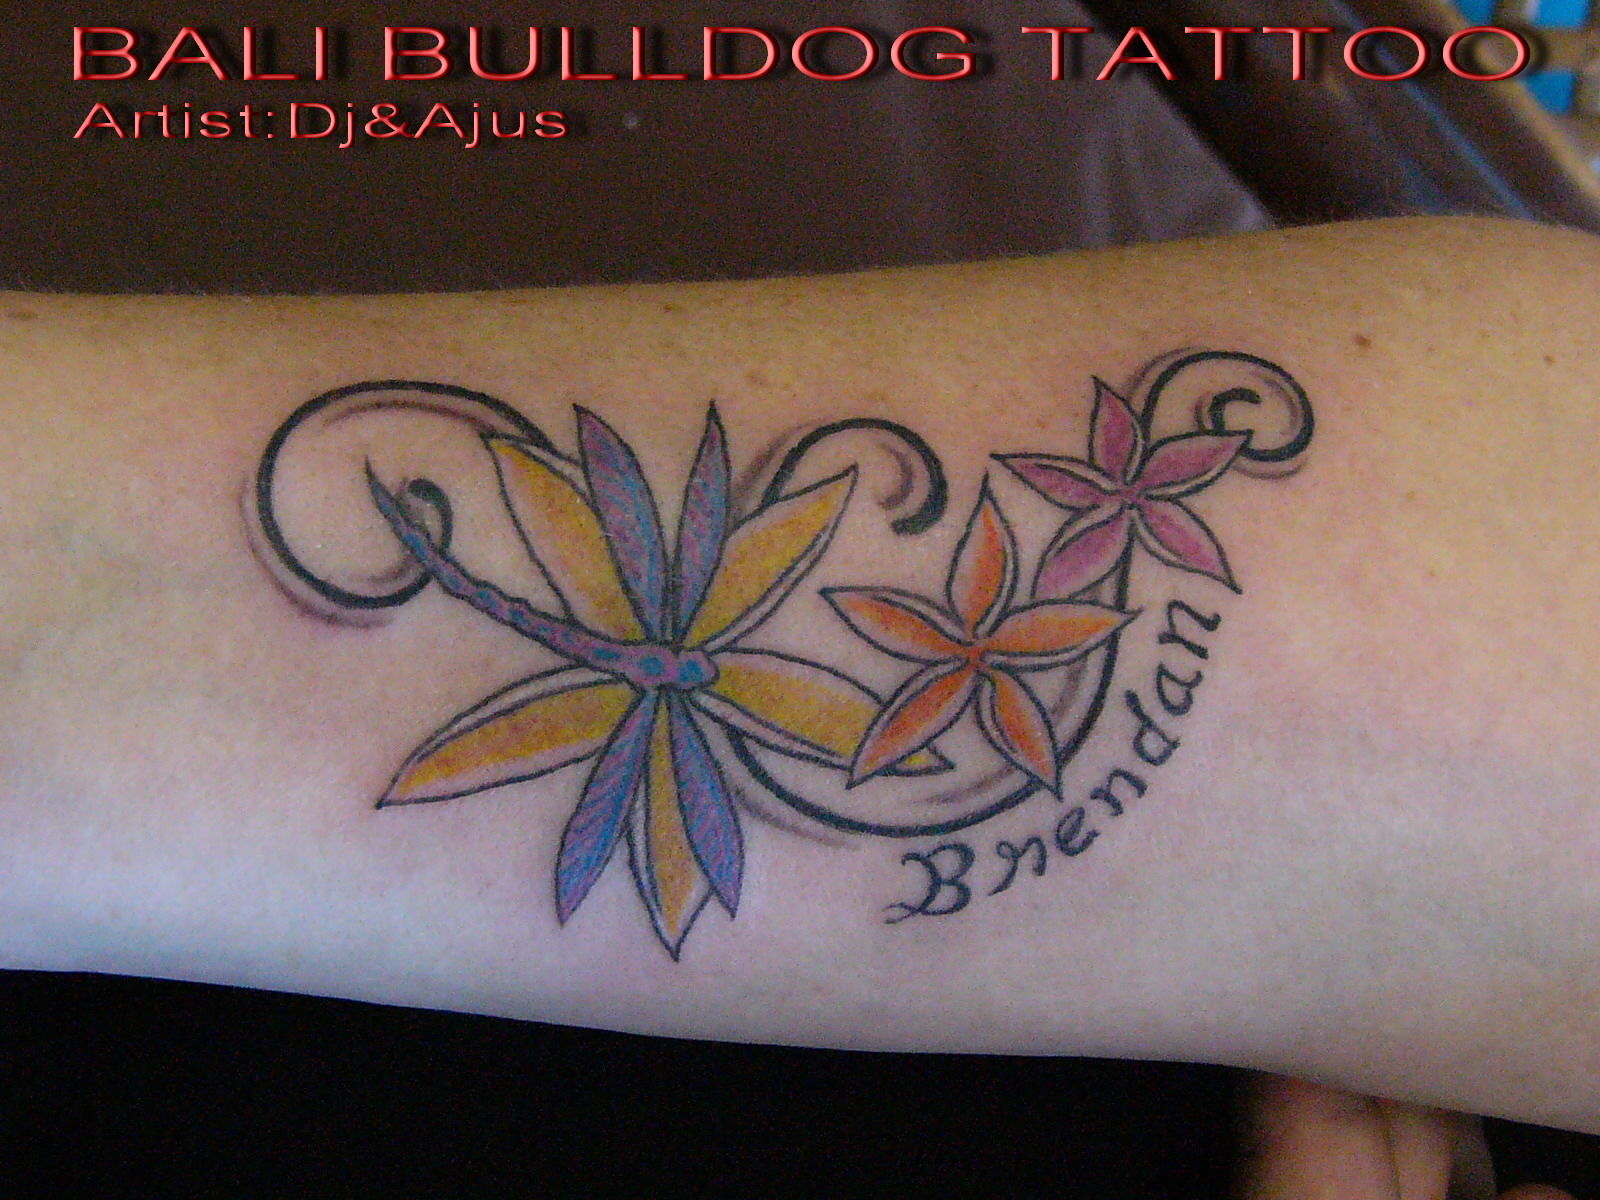 BALI BULLDOG TATTOO STUDIO